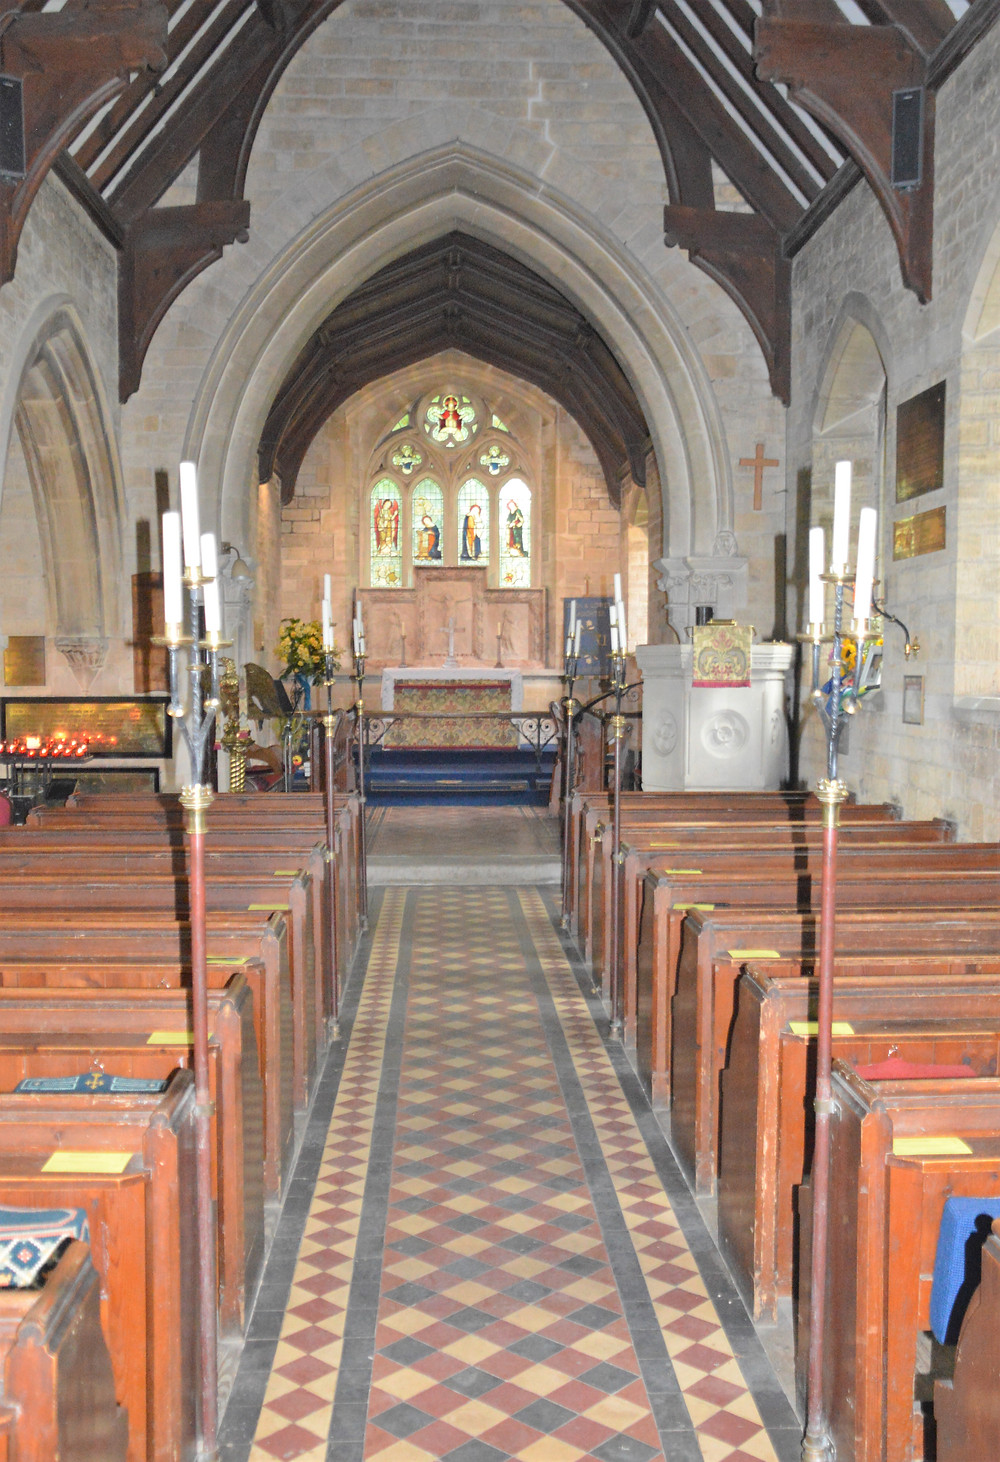 Interior of Church of St. Mary in Lower Slaughter of the Cotswolds